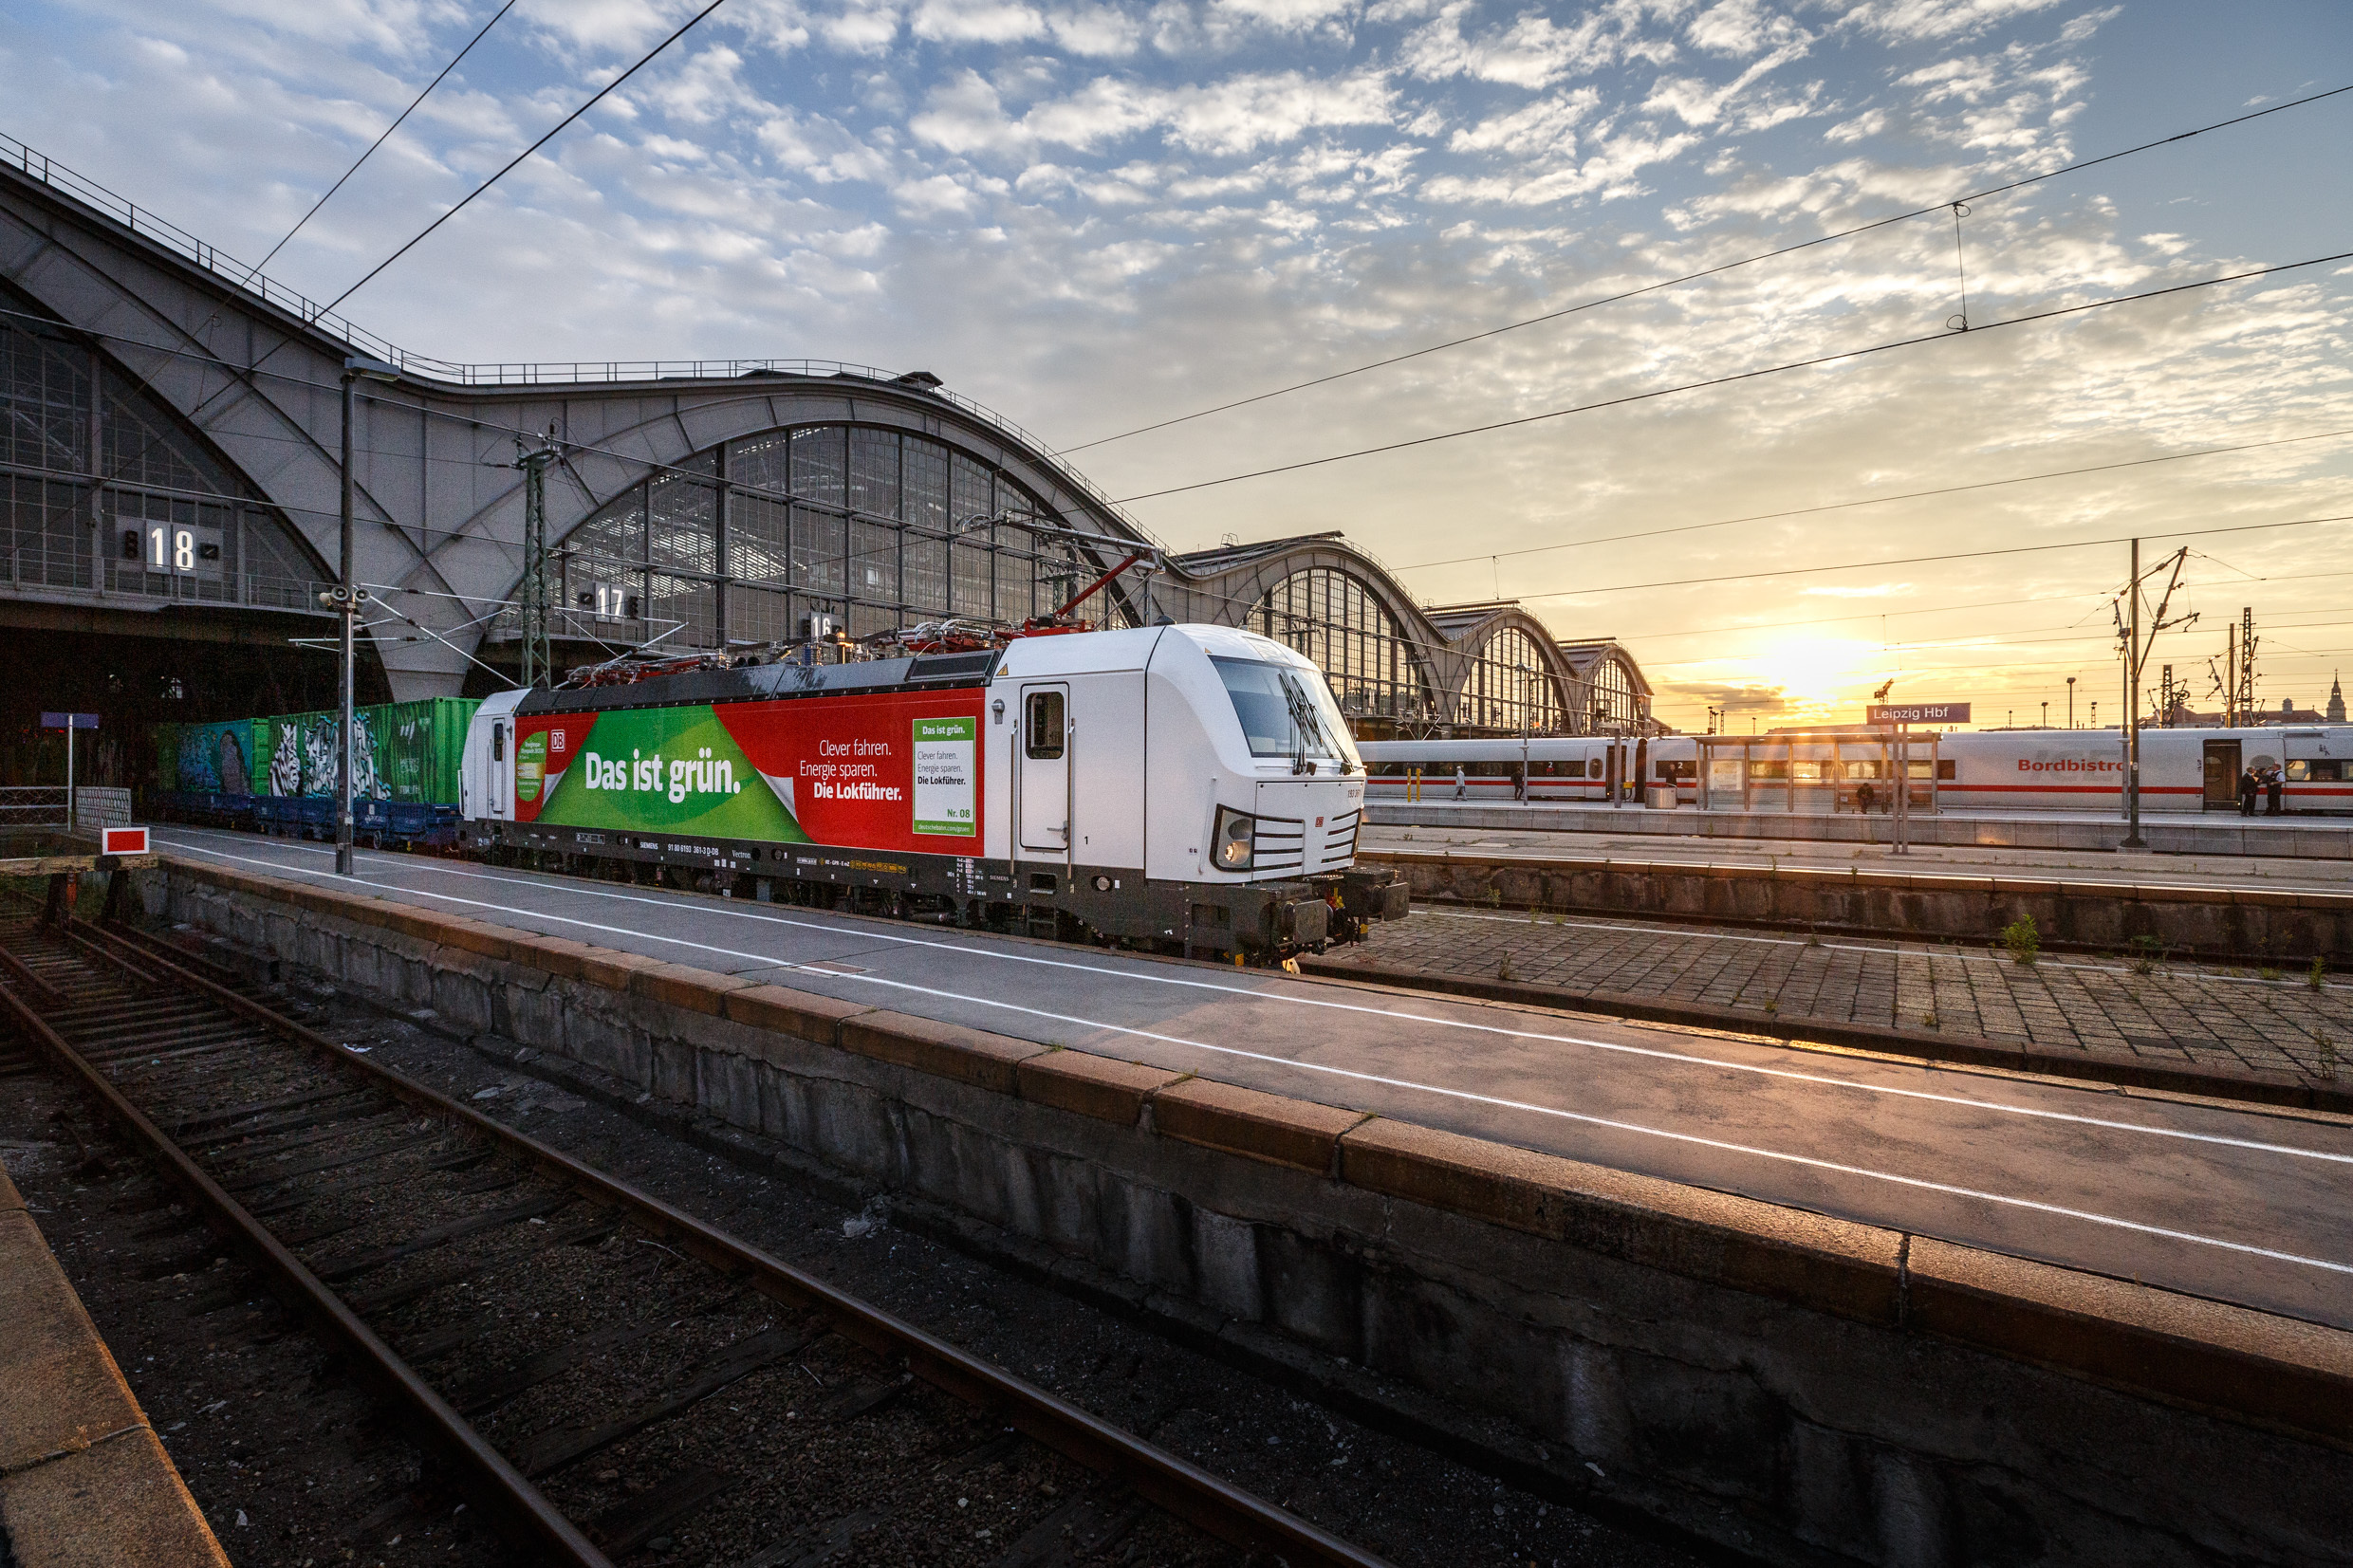 Deutsche Bahn to halve glyphosate use in 2020